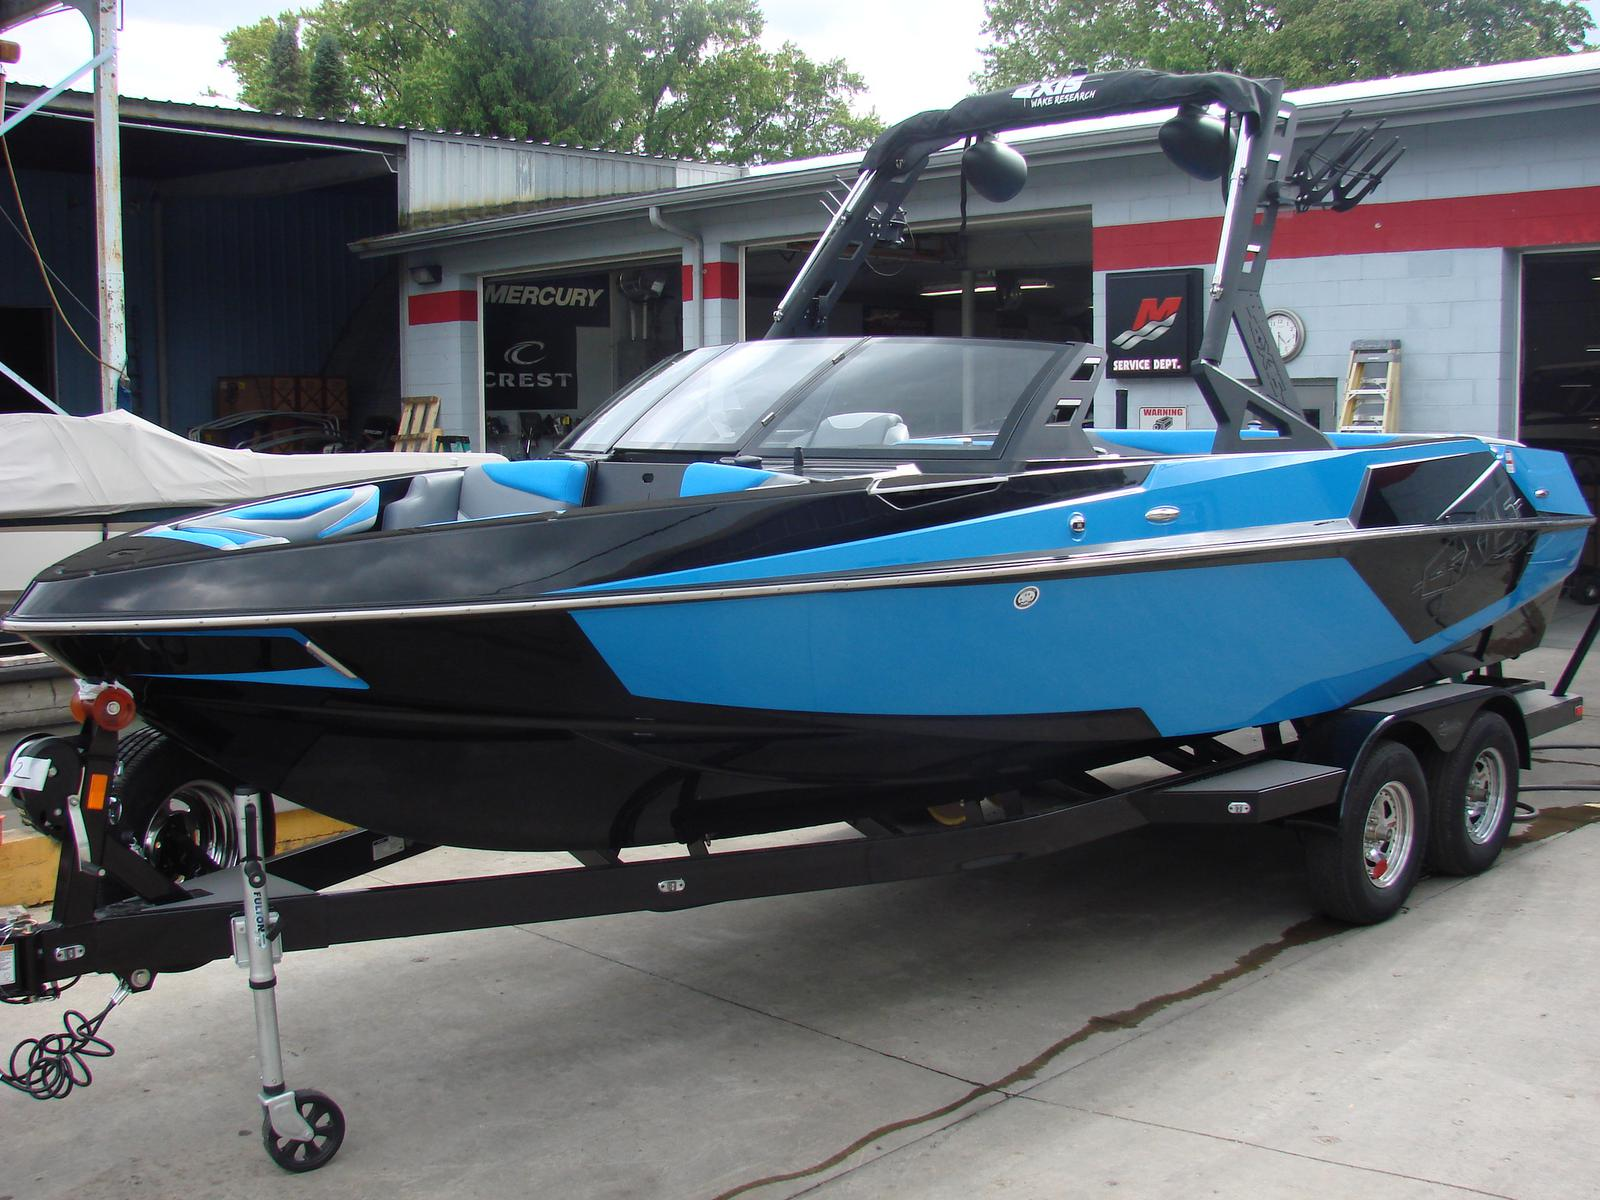 Inventory from Axis Wake Research and Malibu Boats LLC Tinus